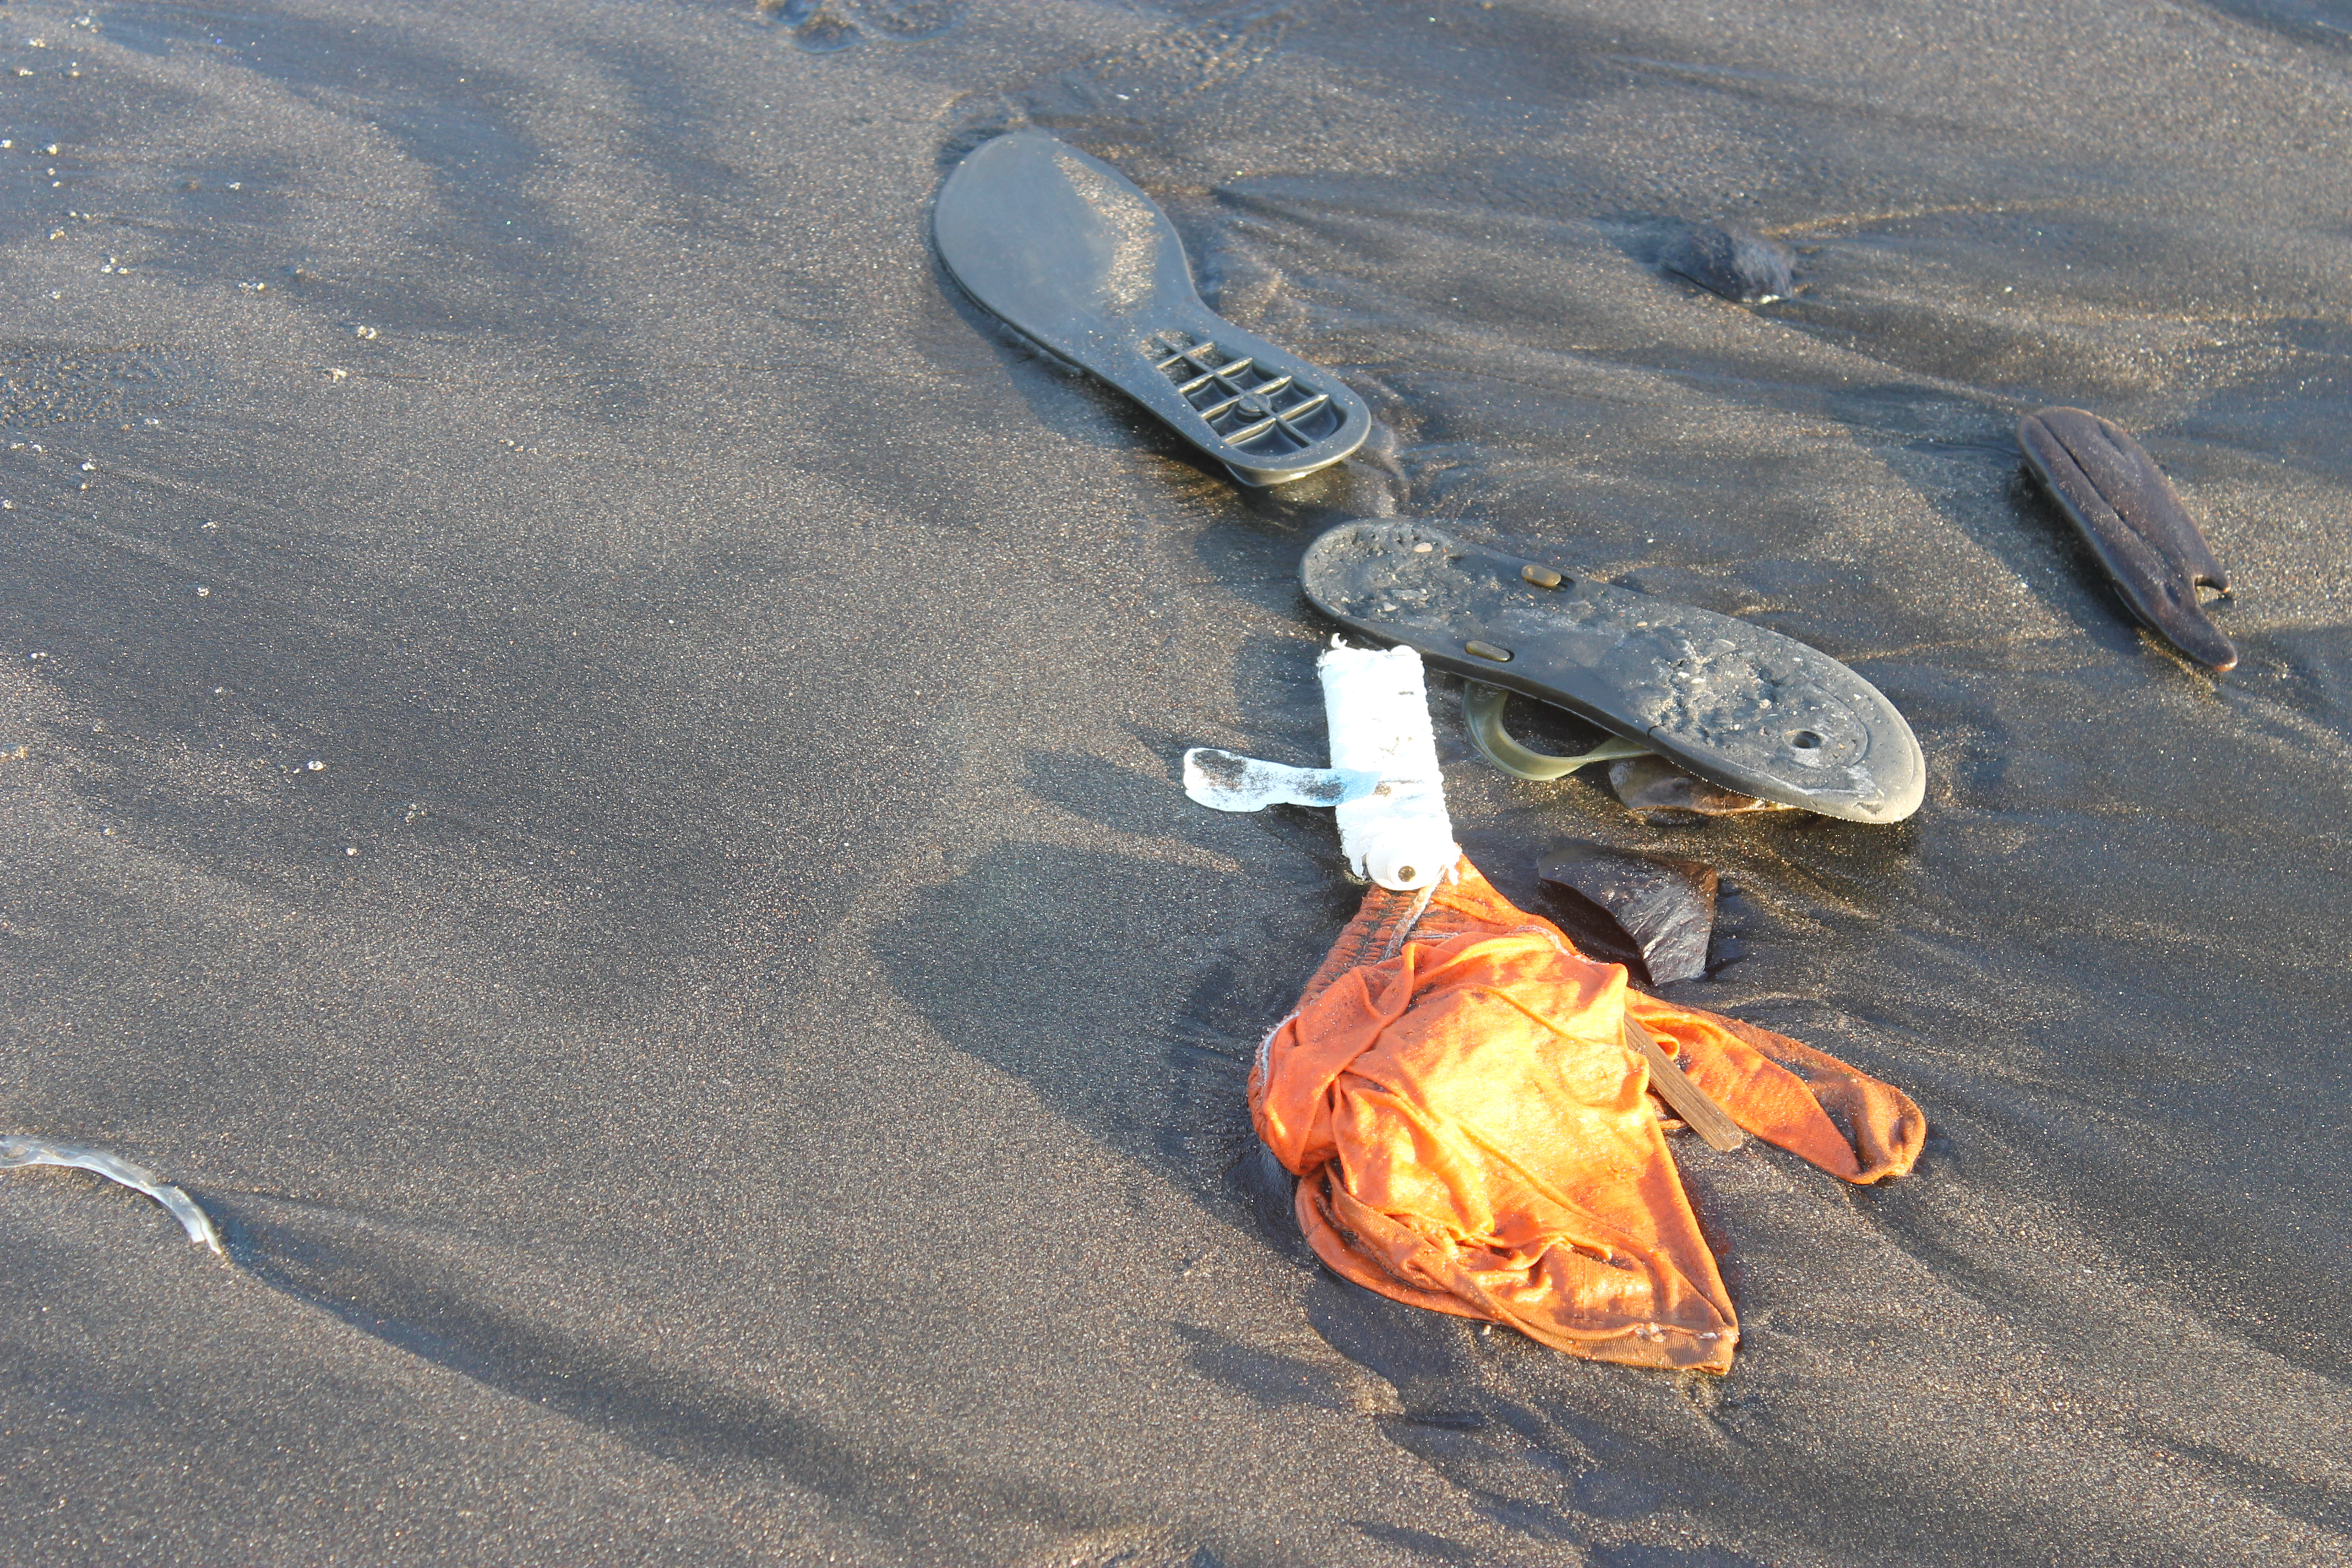 Ocean Junk : A Sad Litany of the Prosaic and the Strange